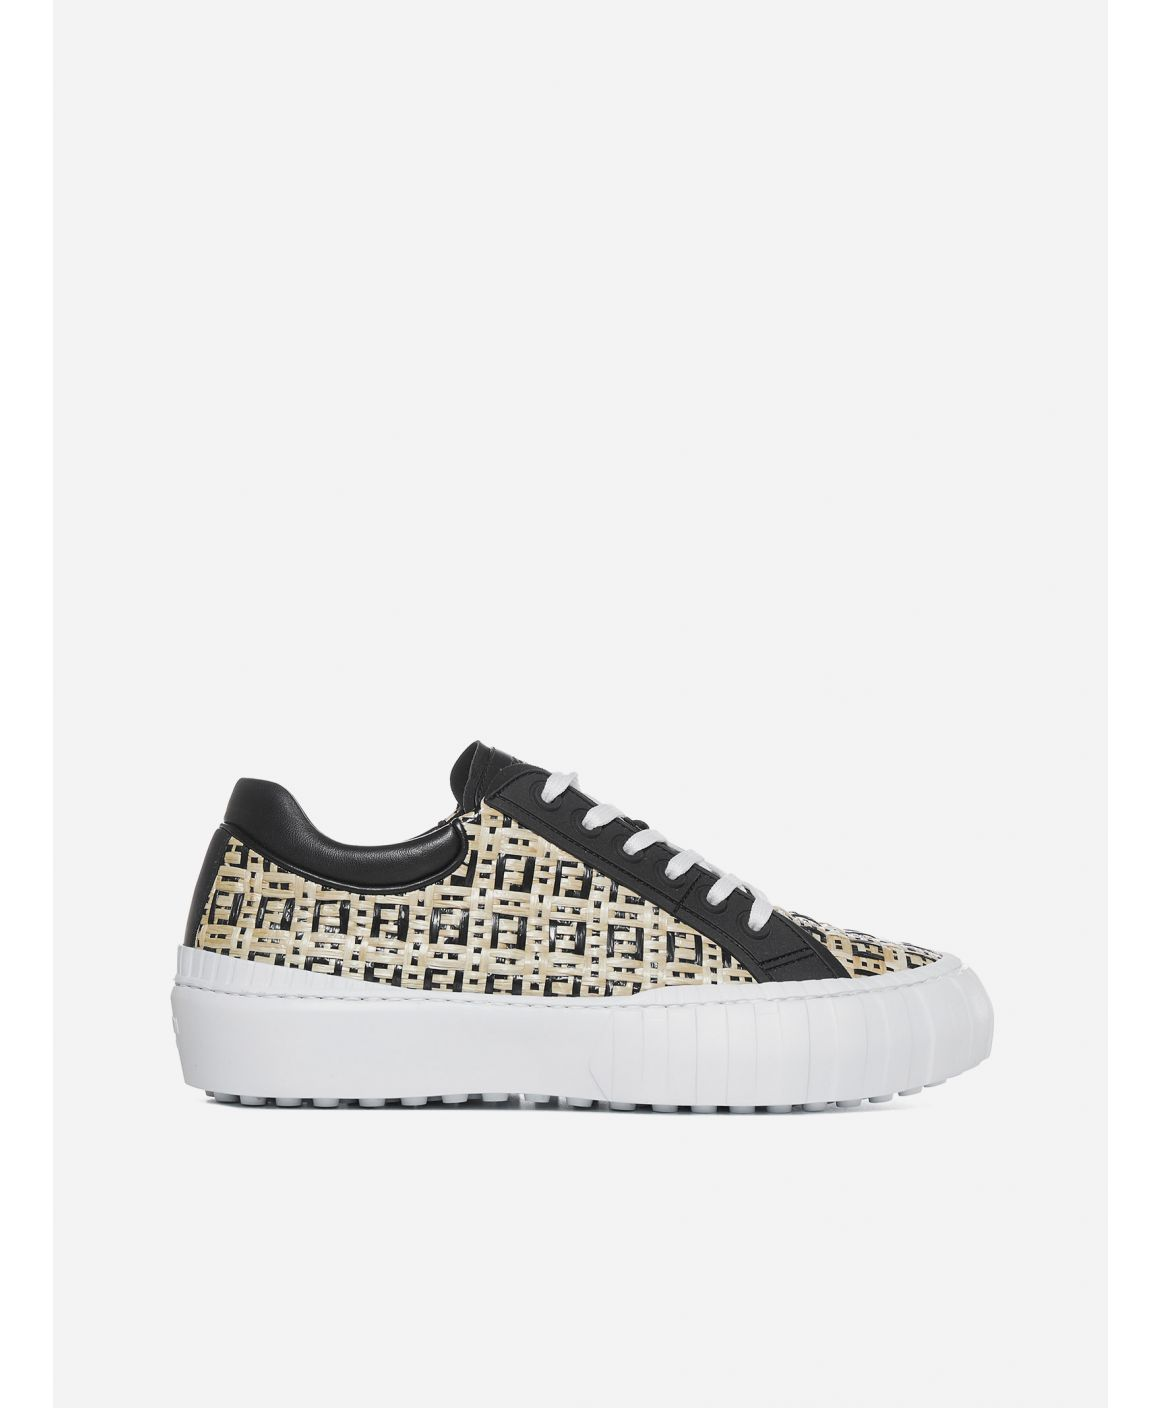 FF woven leather sneakers